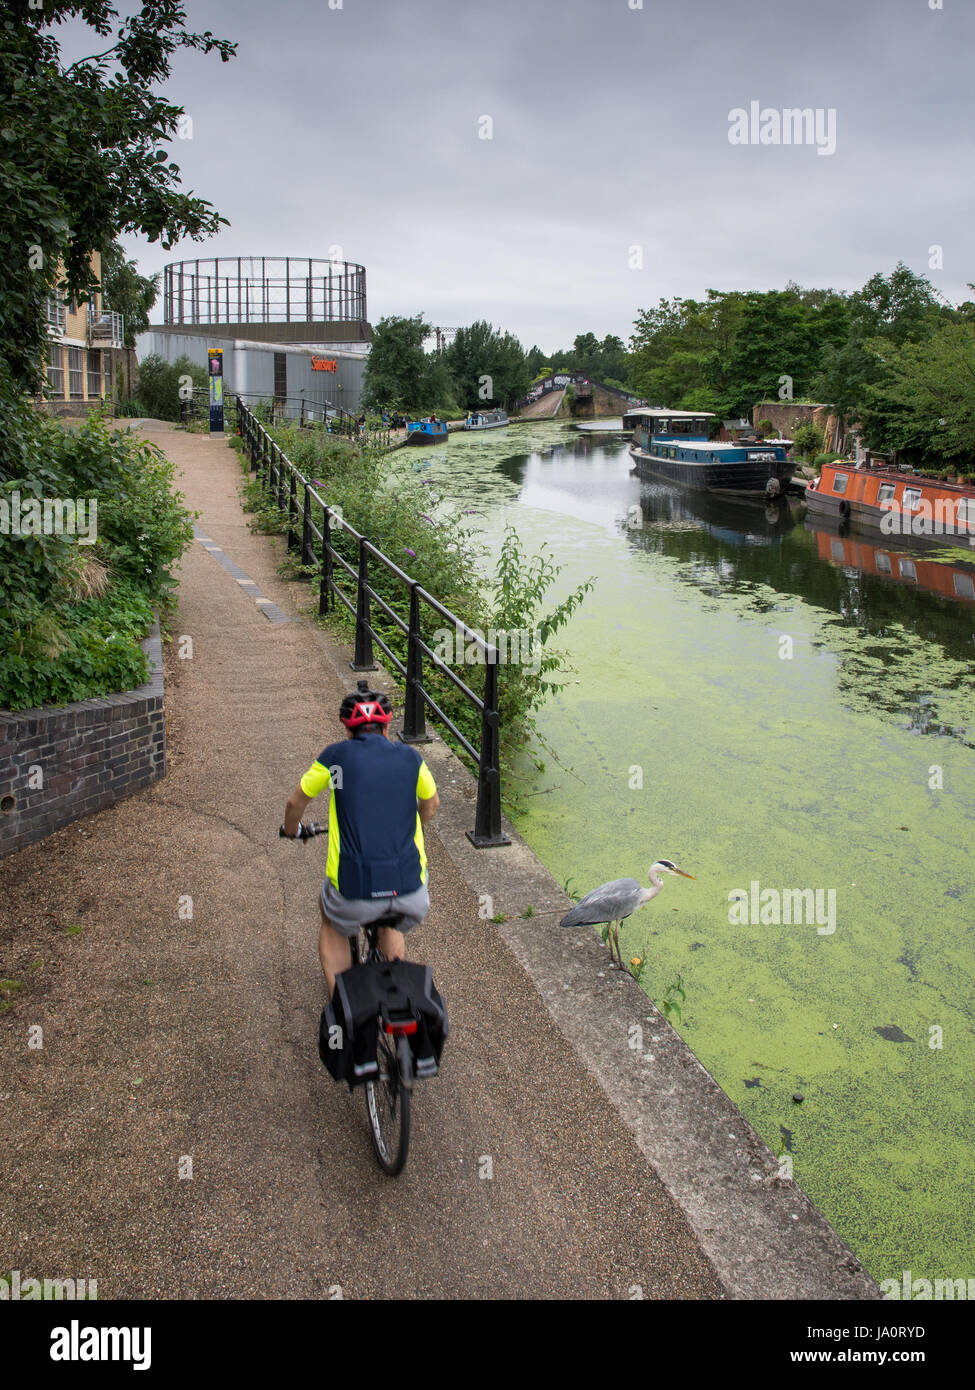 London, England - July 15, 2016: A cyclist passes a heron on the Grand Union Canal towpath at Ladbroke Grove in Stock Photo